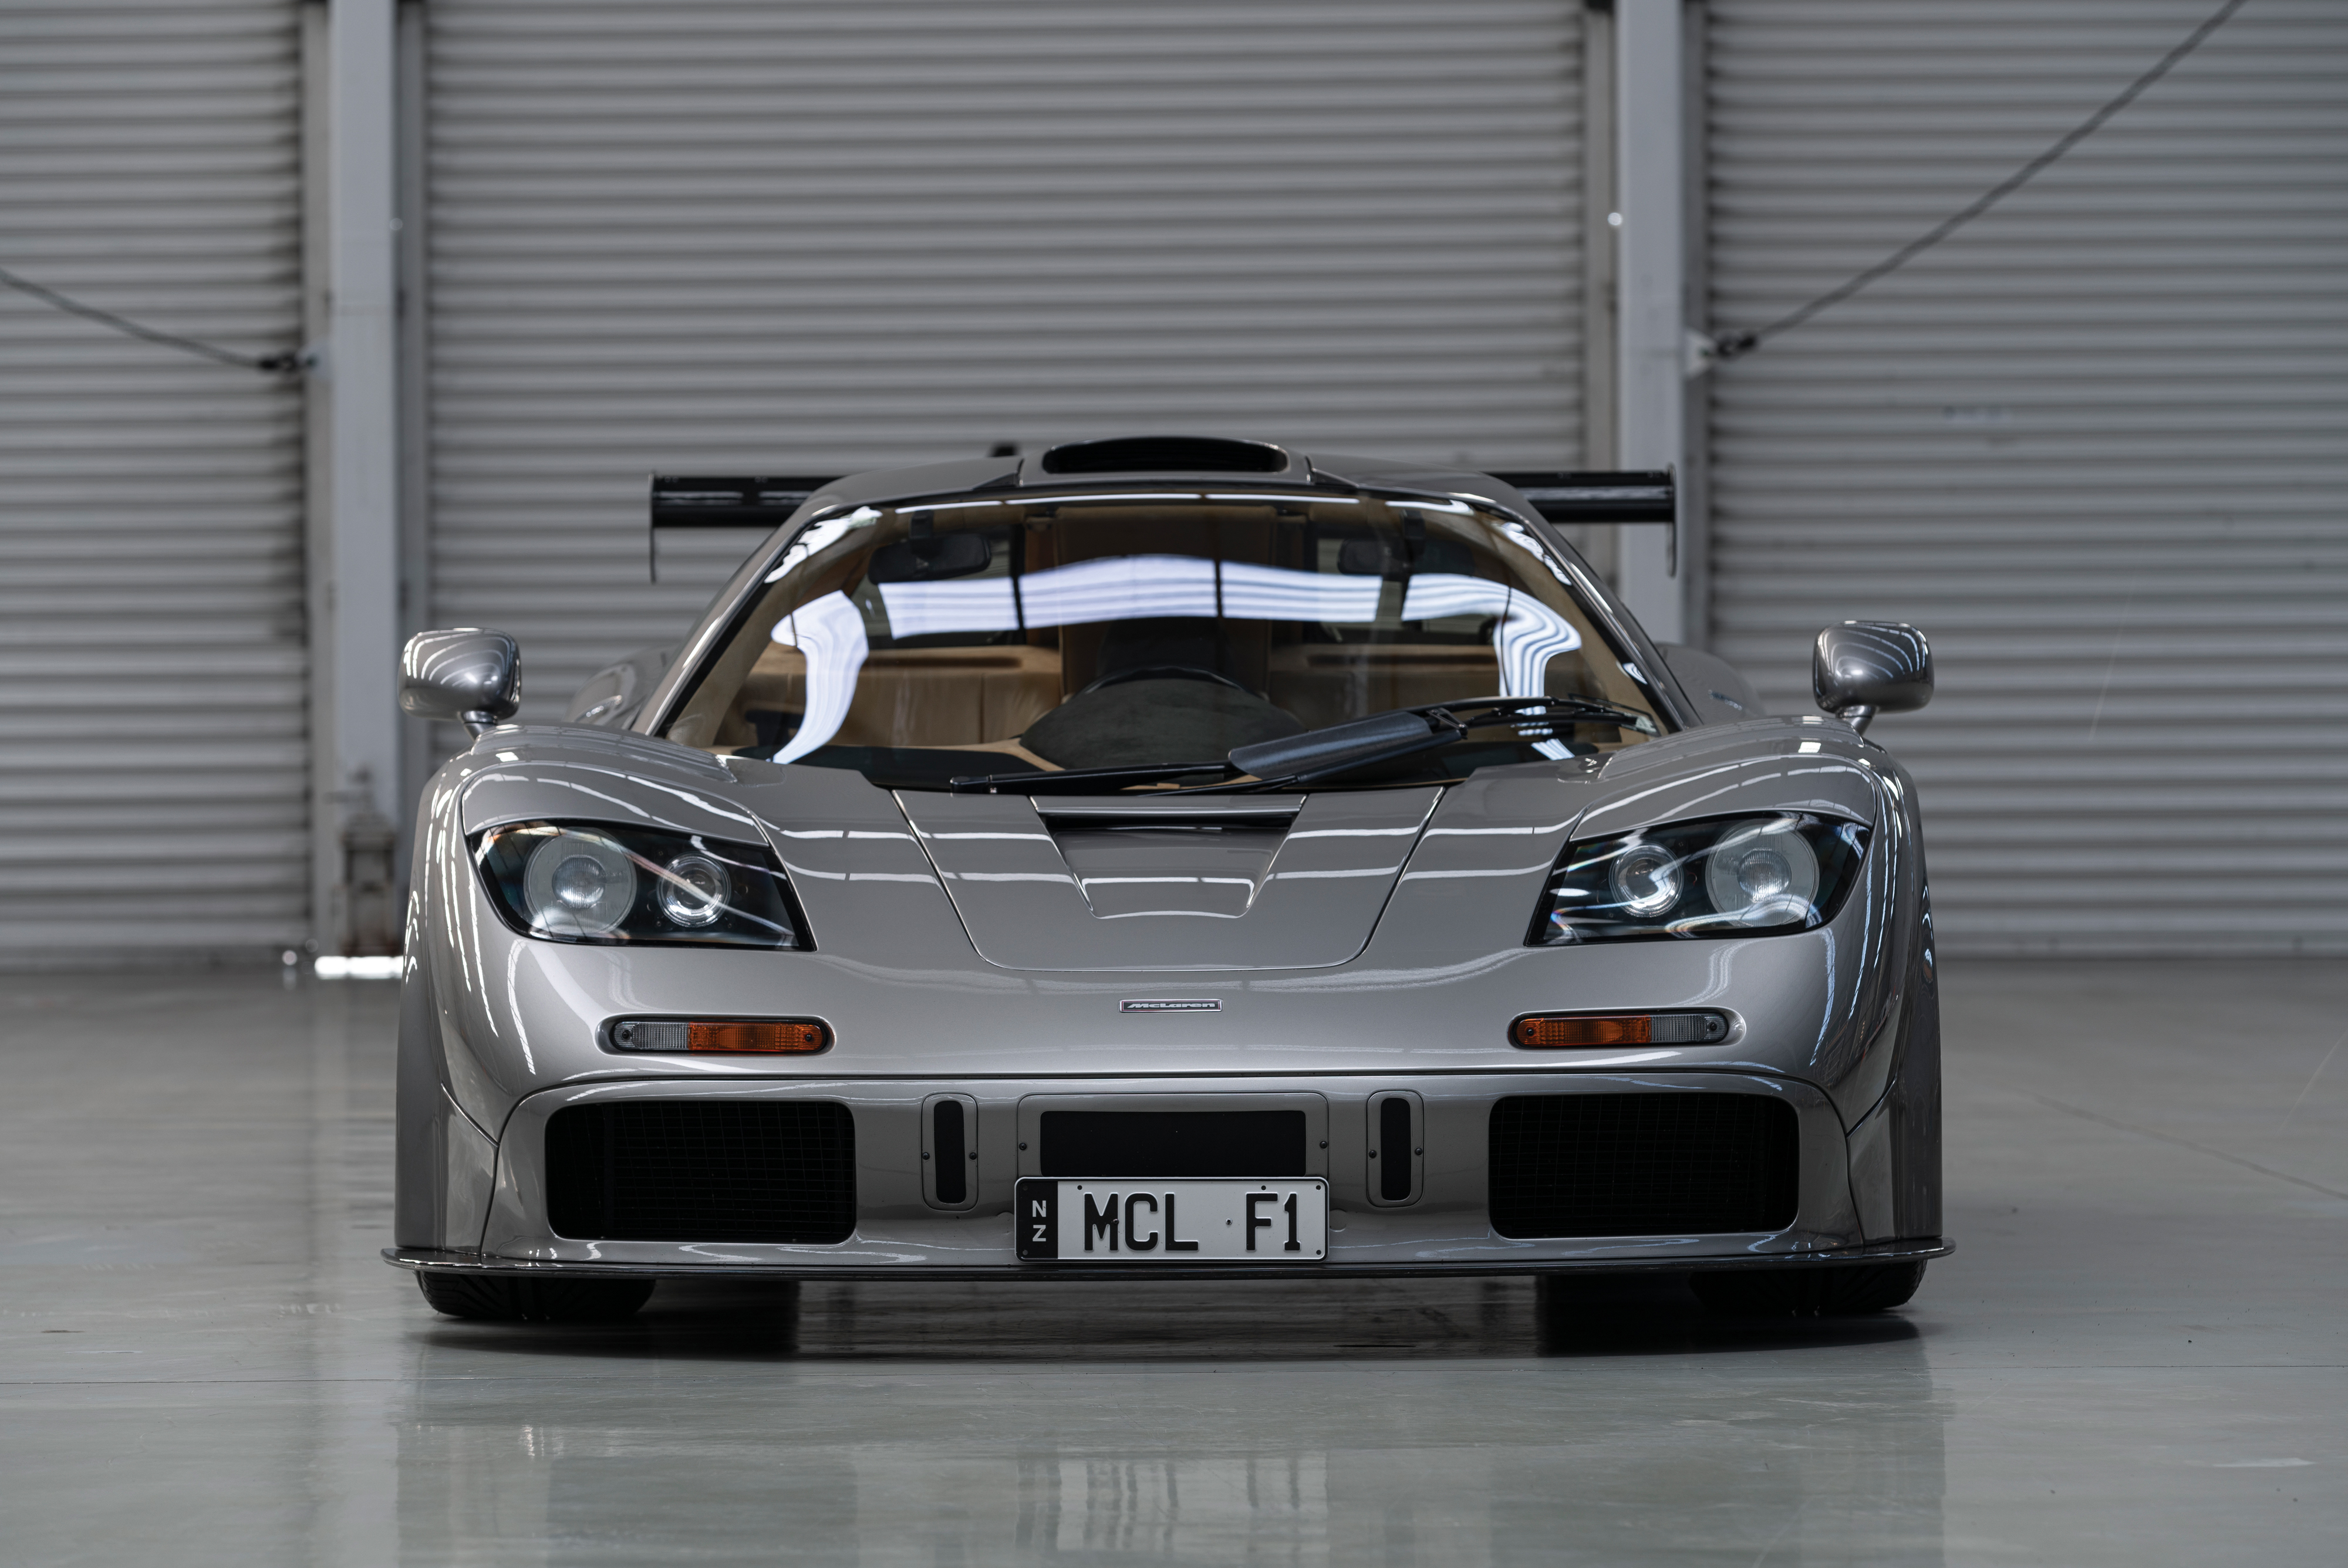 The McLaren F1 could be set to smash auction records